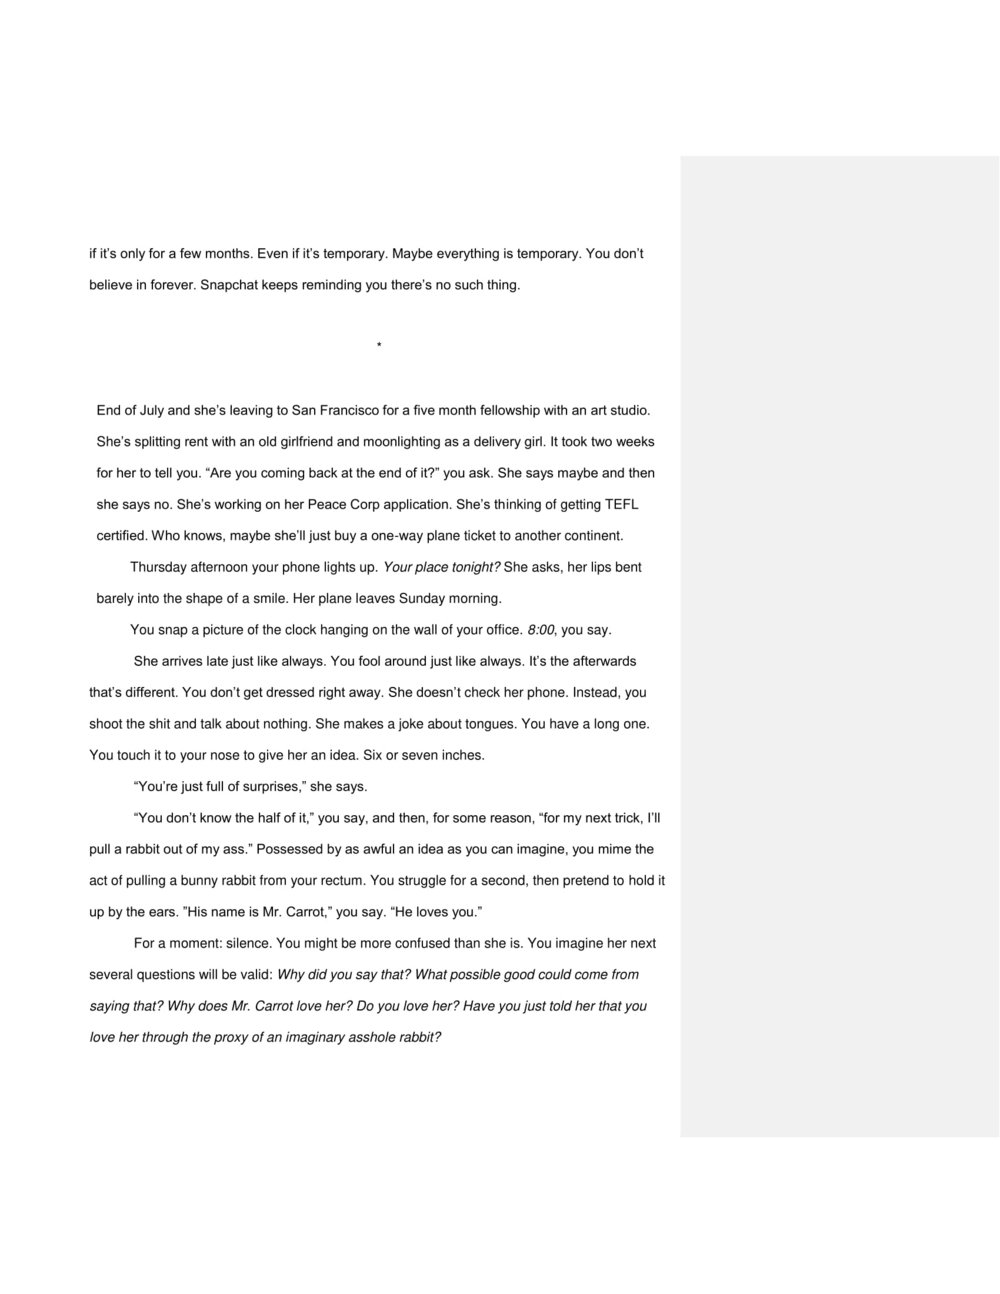 Untitled Love Story - First Draft-16.jpg